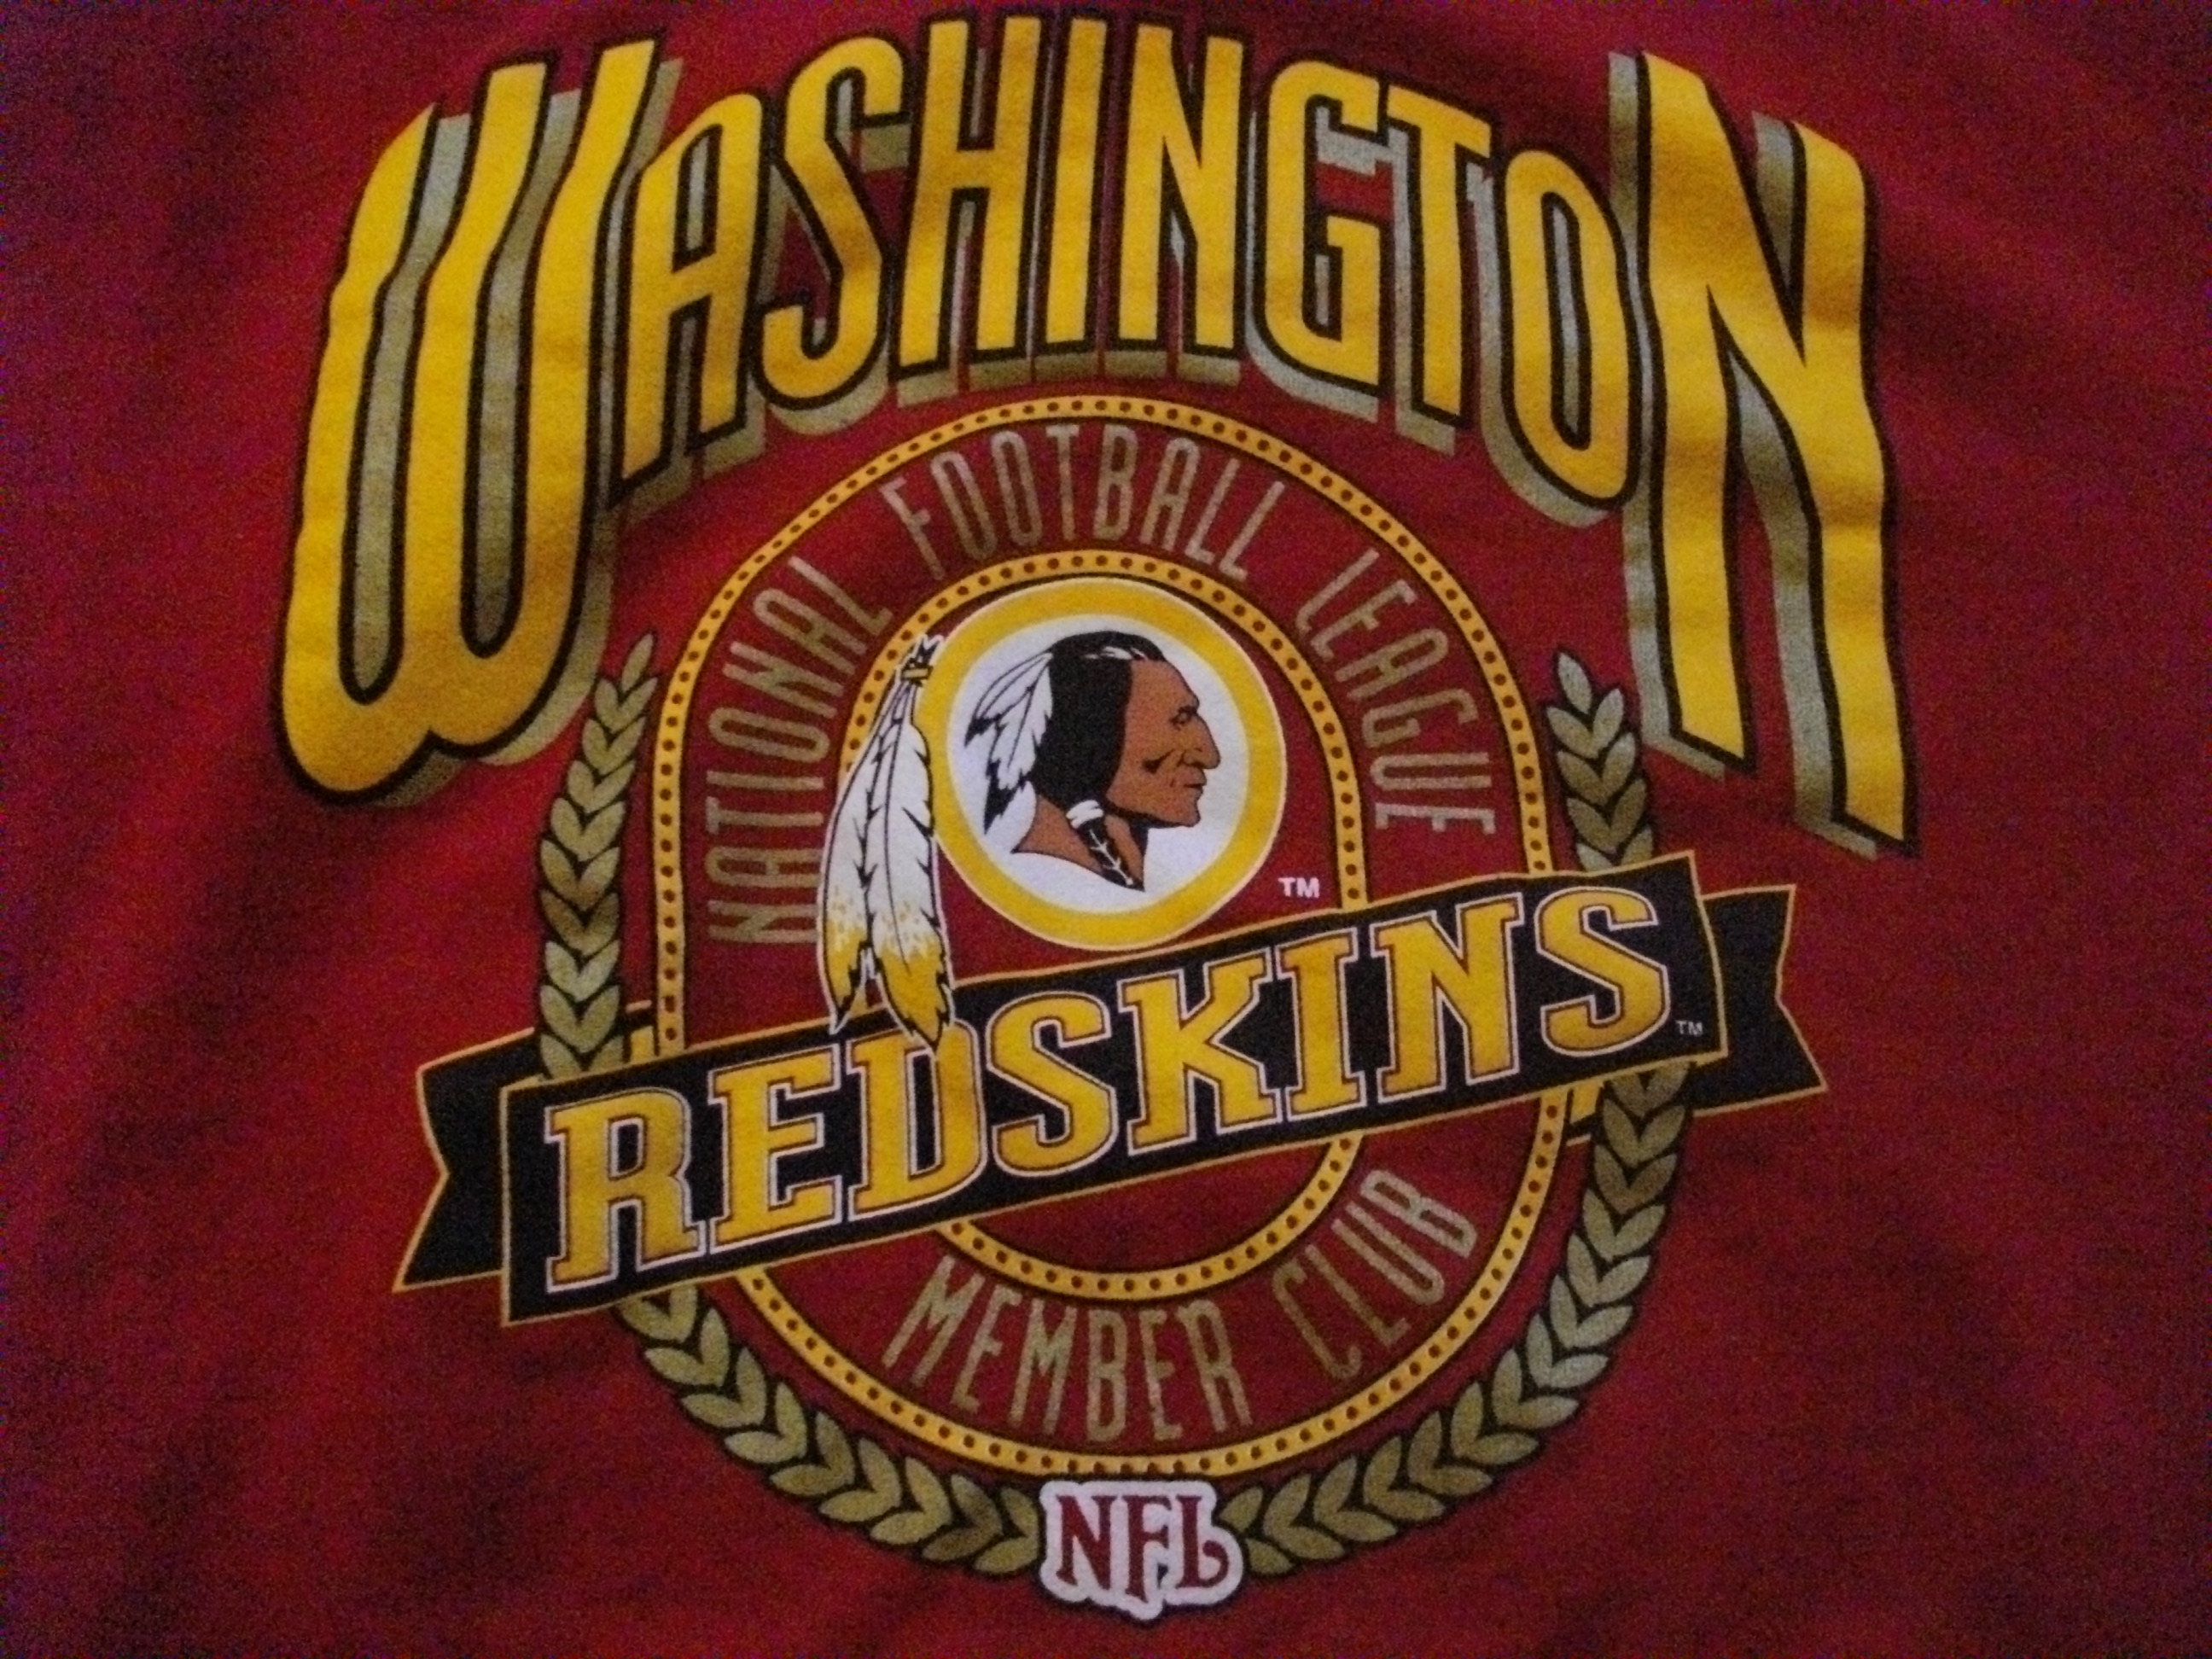 WASHINGTON REDSKINS nfl football rq JPG wallpaper 2592x1944 155247 2592x1944